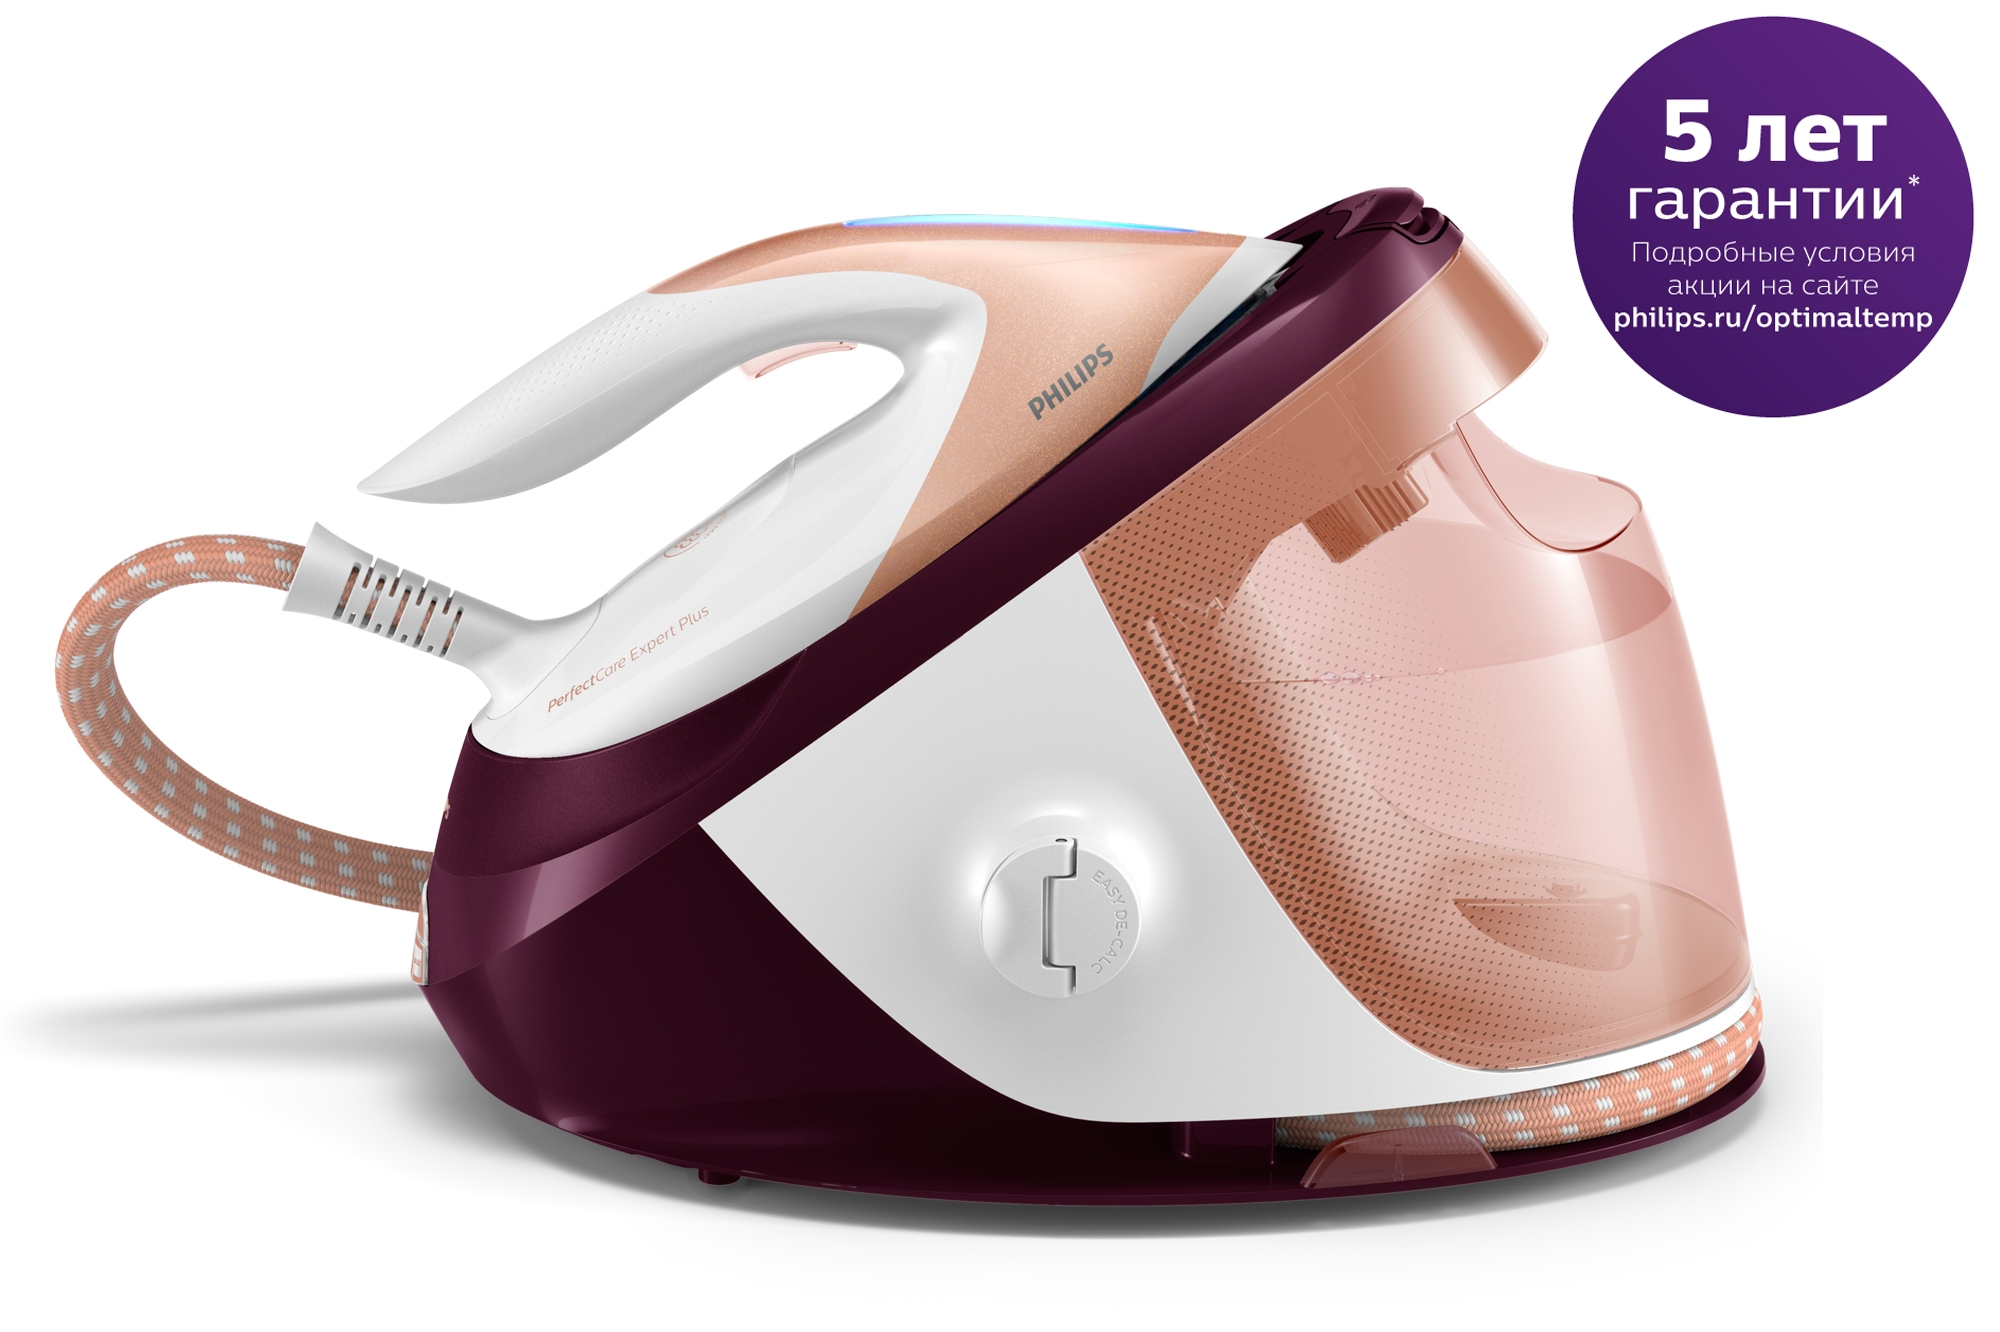 Парогенератор Philips PerfectCare Expert Plus GC8962 GC8962/40 фото